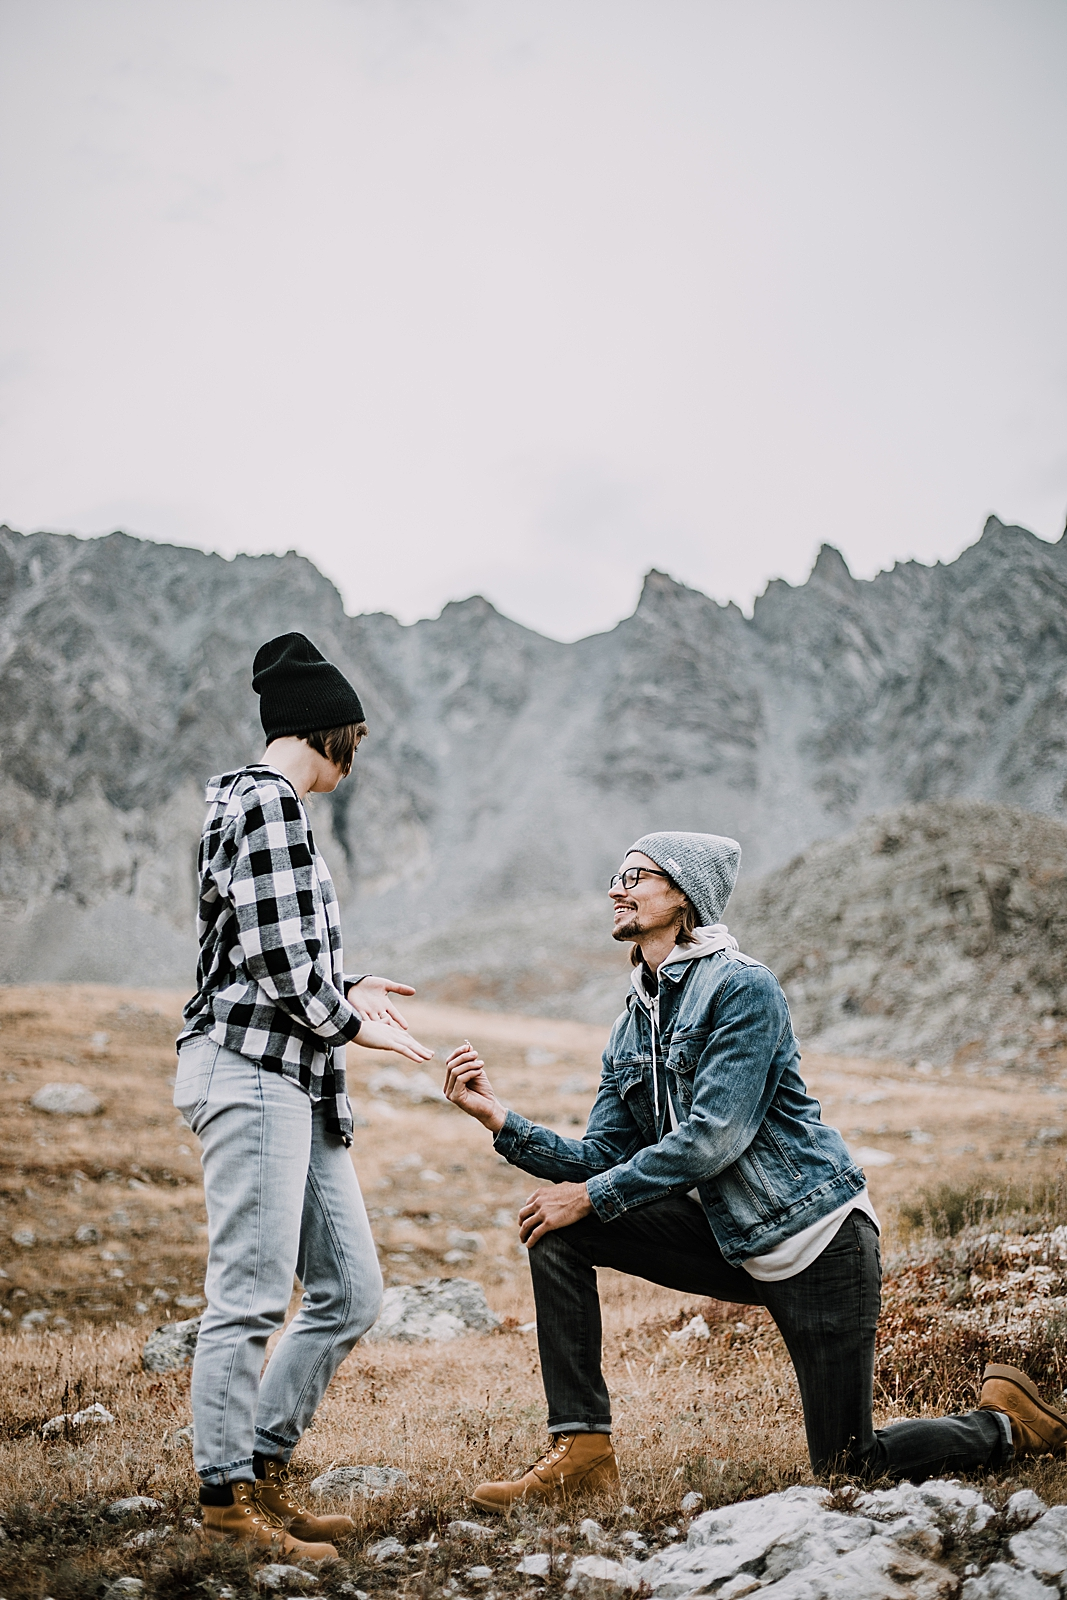 man proposing, colorado surprise proposal, hike mayflower gulch, mayflower gulch proposal, mayflower gulch elopement, mayflower gulch wedding, mayflower gulch engagments, leadville elopement